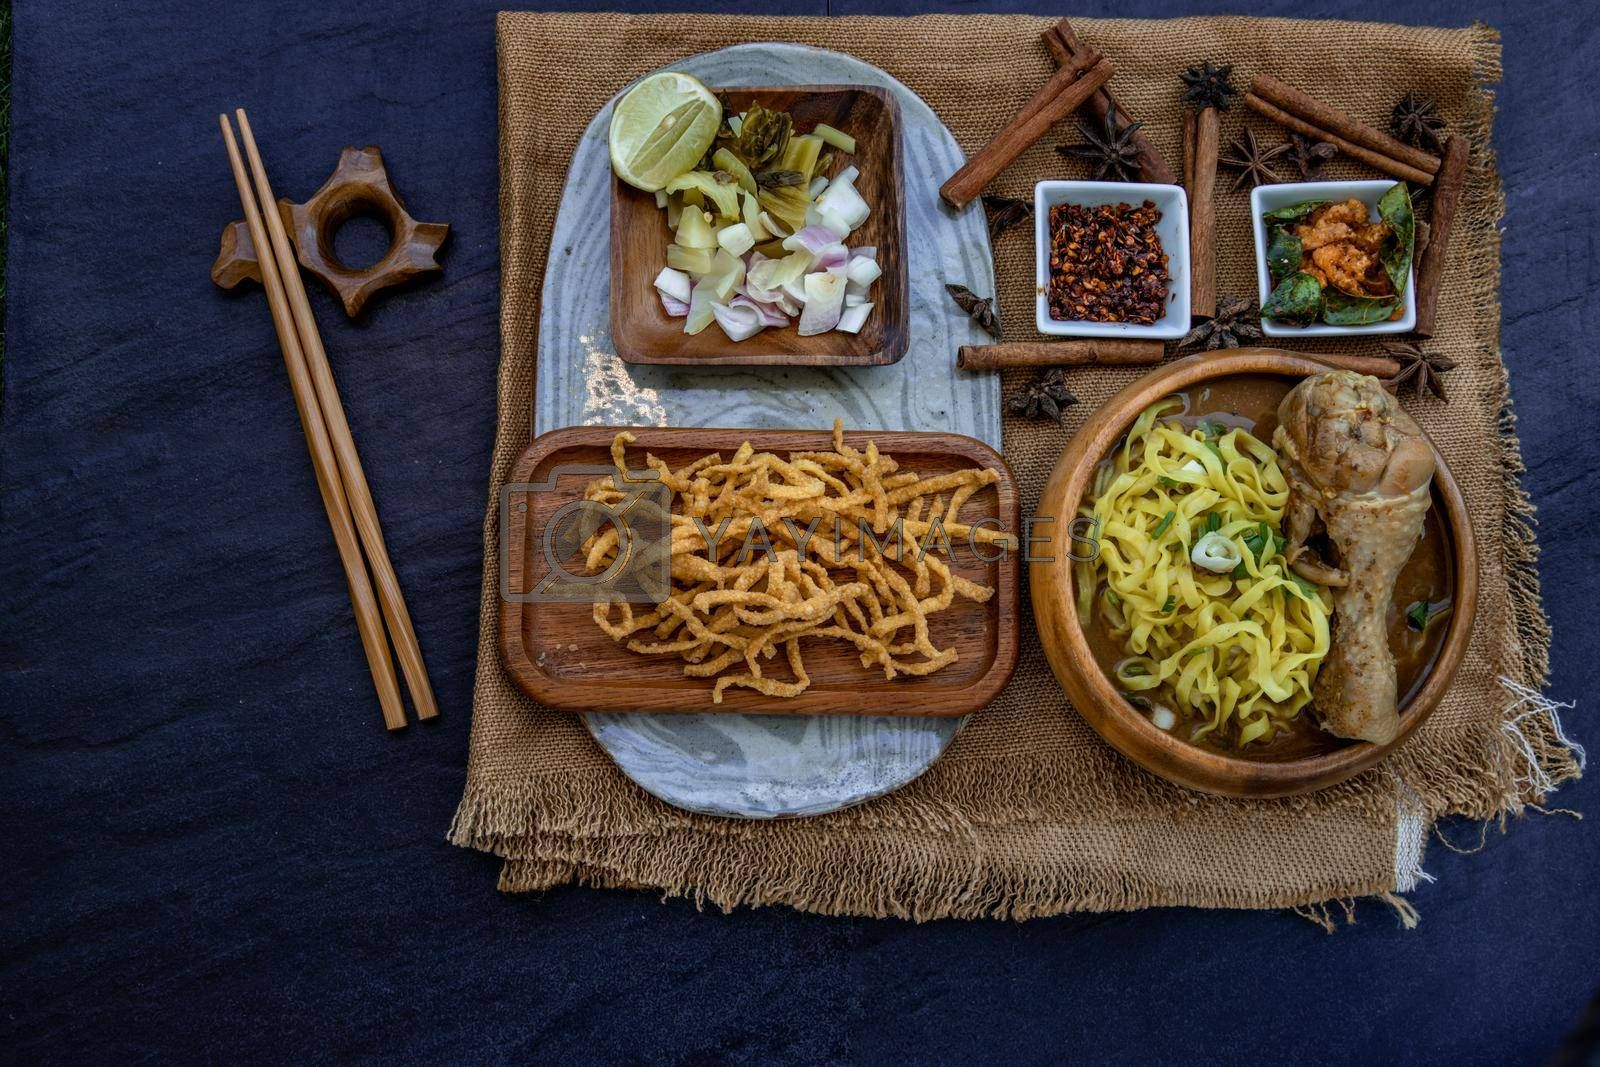 Northern Style Curried Noodle Soup with coconut milk (Khao soi), Traditional of Northern Thai cuisine, Top view.